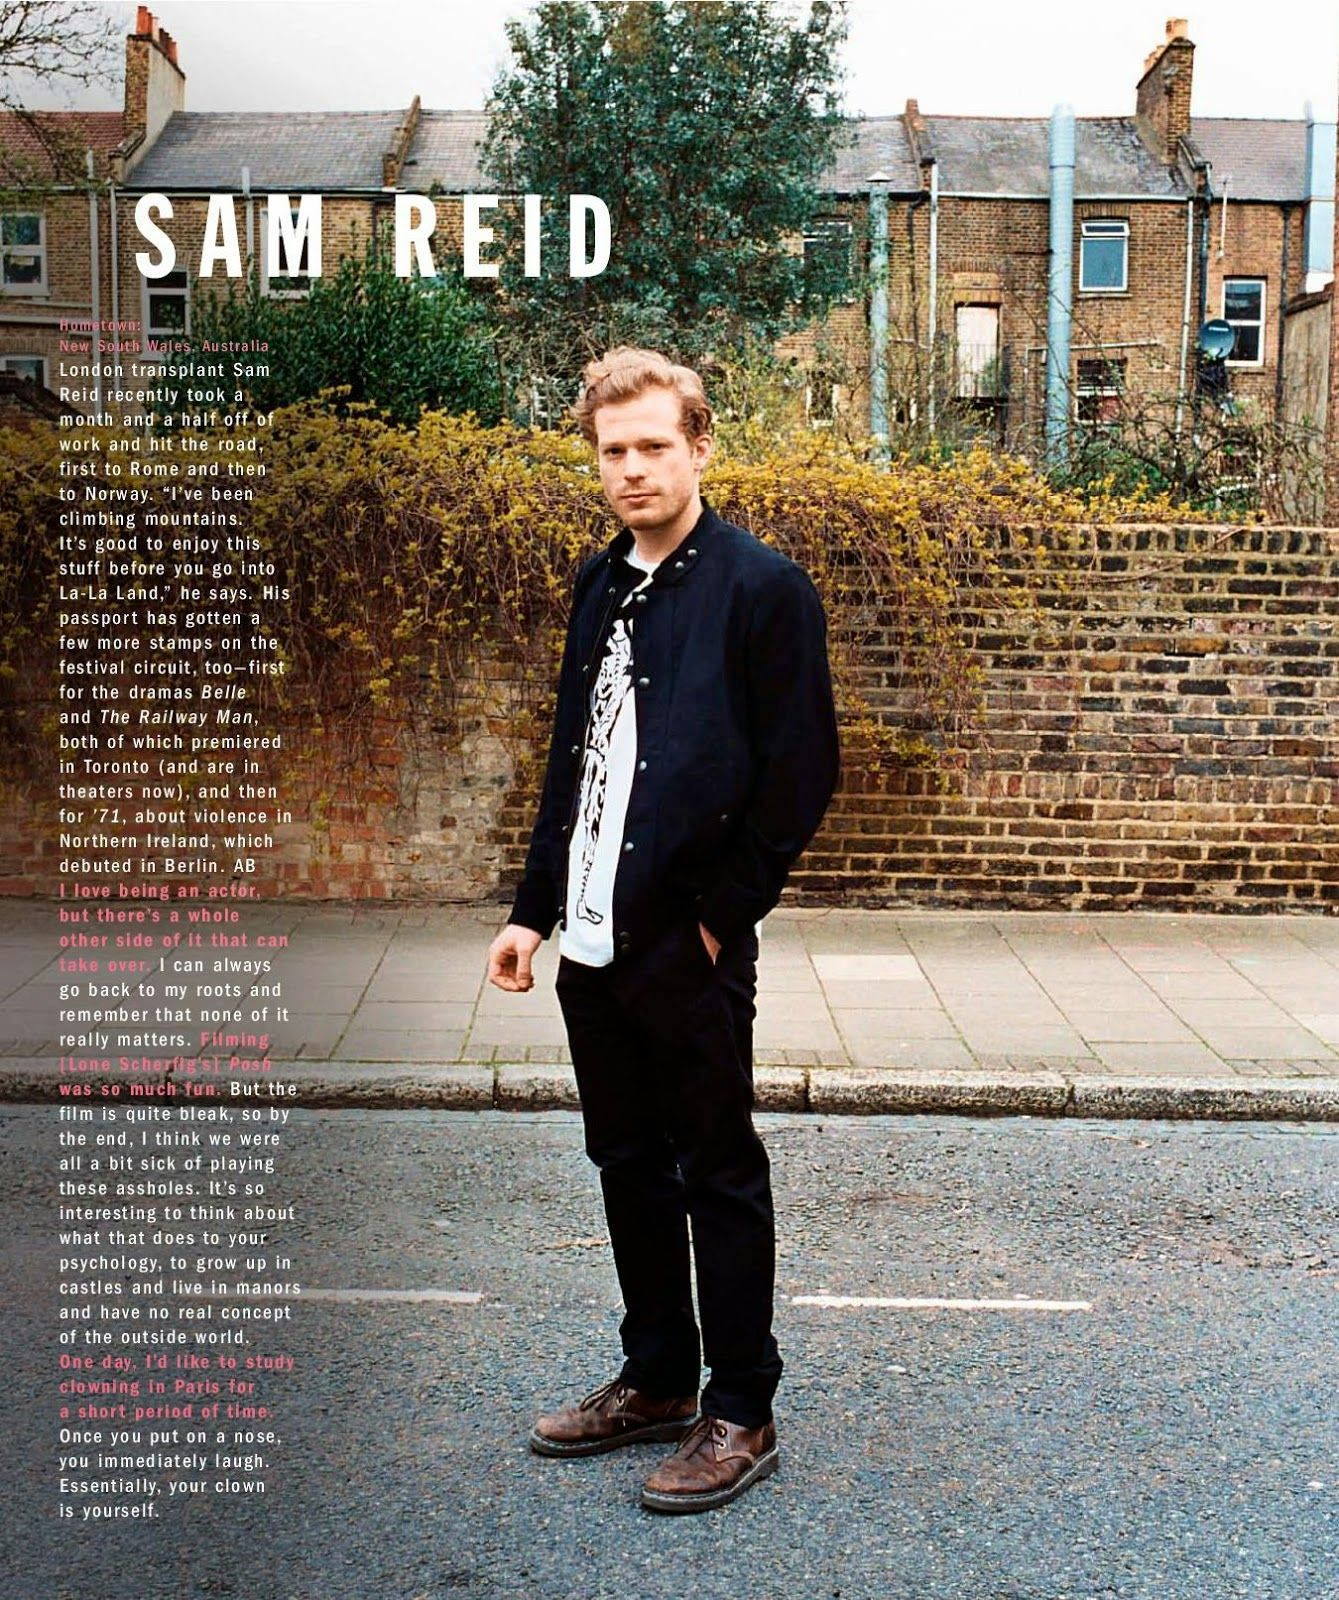 sam reid interviewsam reid instagram, sam reid tumblr, sam reid personal life, sam reid actor, sam reid surfer, sam reid insta, sam reid riot club, sam reid wikipedia, sam reid afl, sam reid belle, sam reid interview, sam reid wiki, sam reid anonymous, sam reid swans, sam reid gws, sam reid dating, sam reid imdb, sam reid twitter, sam reid facebook, sam reid and gugu